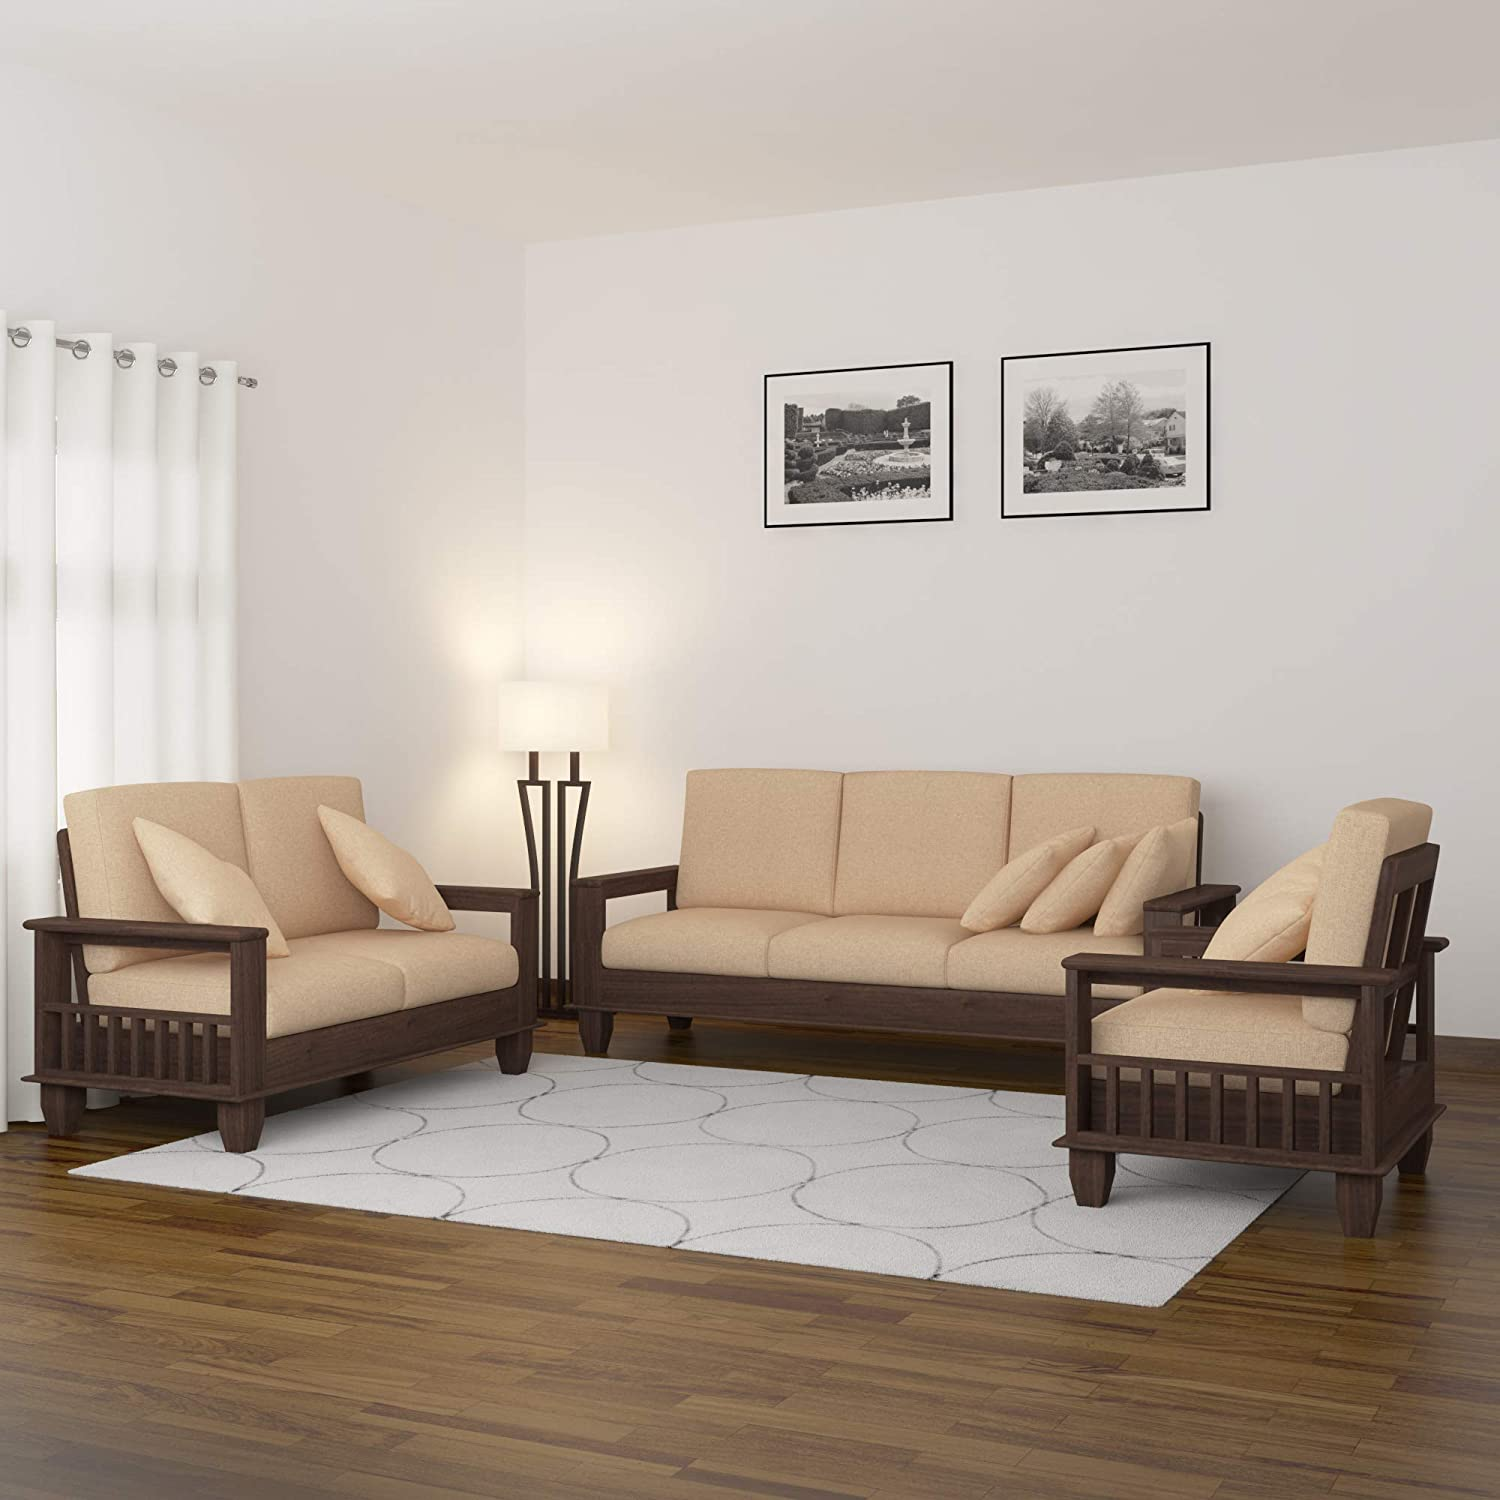 Mamta Decoration Solid Sheesham Wood Wooden Sofa Set Furniture  for Living  Room and Office  9+9+9  Walnut Brown